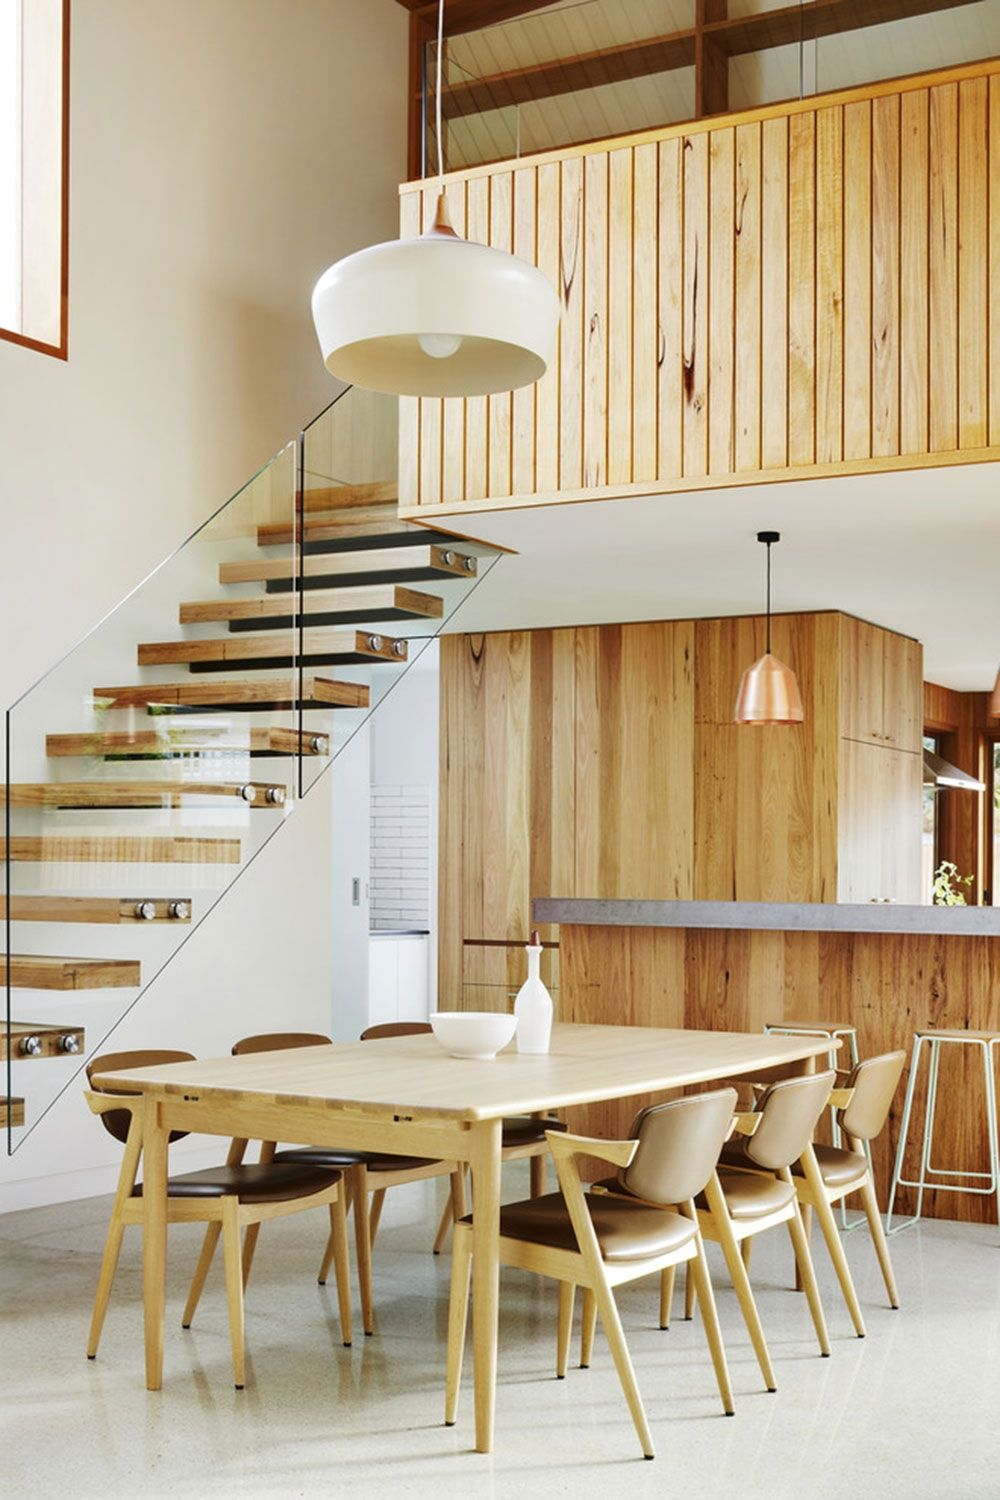 Modern And Exquisite Floating Staircase Designs | Staircase For Small House | Indoor | Cupboard | Narrow | Duplex | Square